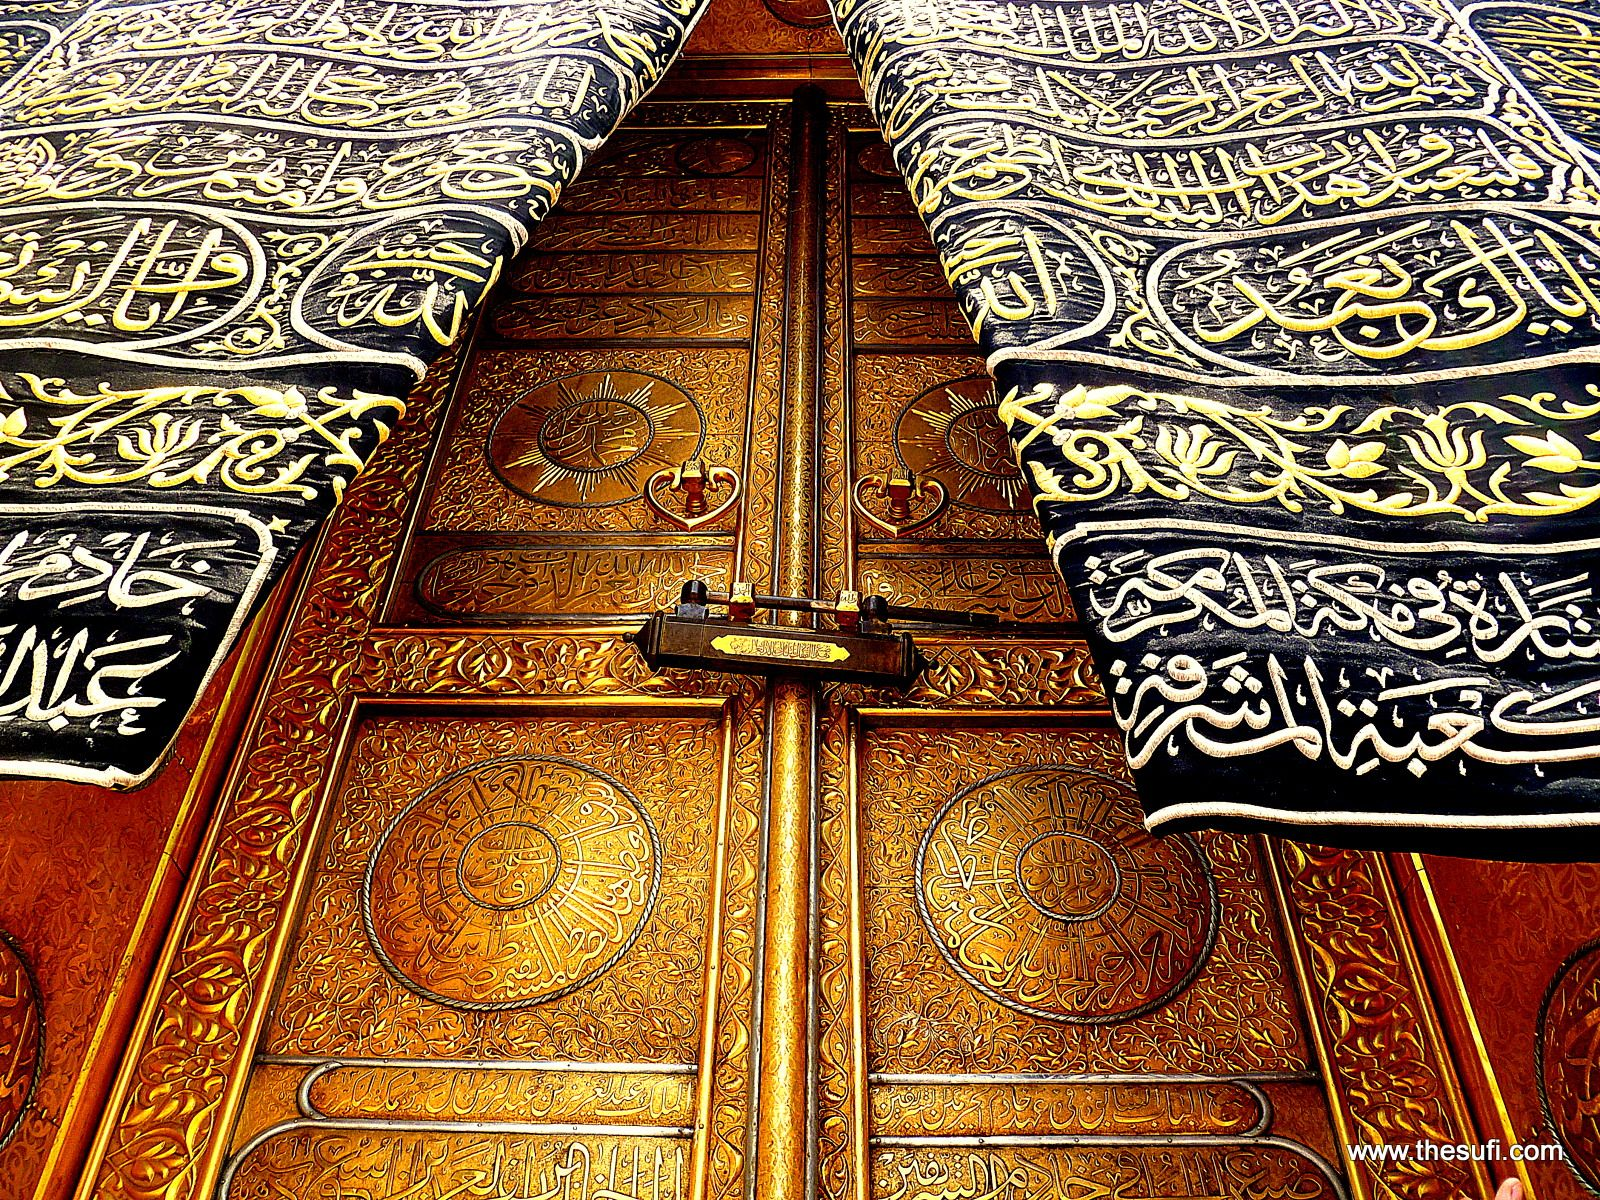 Kaaba The Building Located Inside The Grand Mosque Of Mecca Is Known As The Holiest Place Of Islam The Gigantic Mosque Al Masj Kaba Makkah Masjid Al Haram